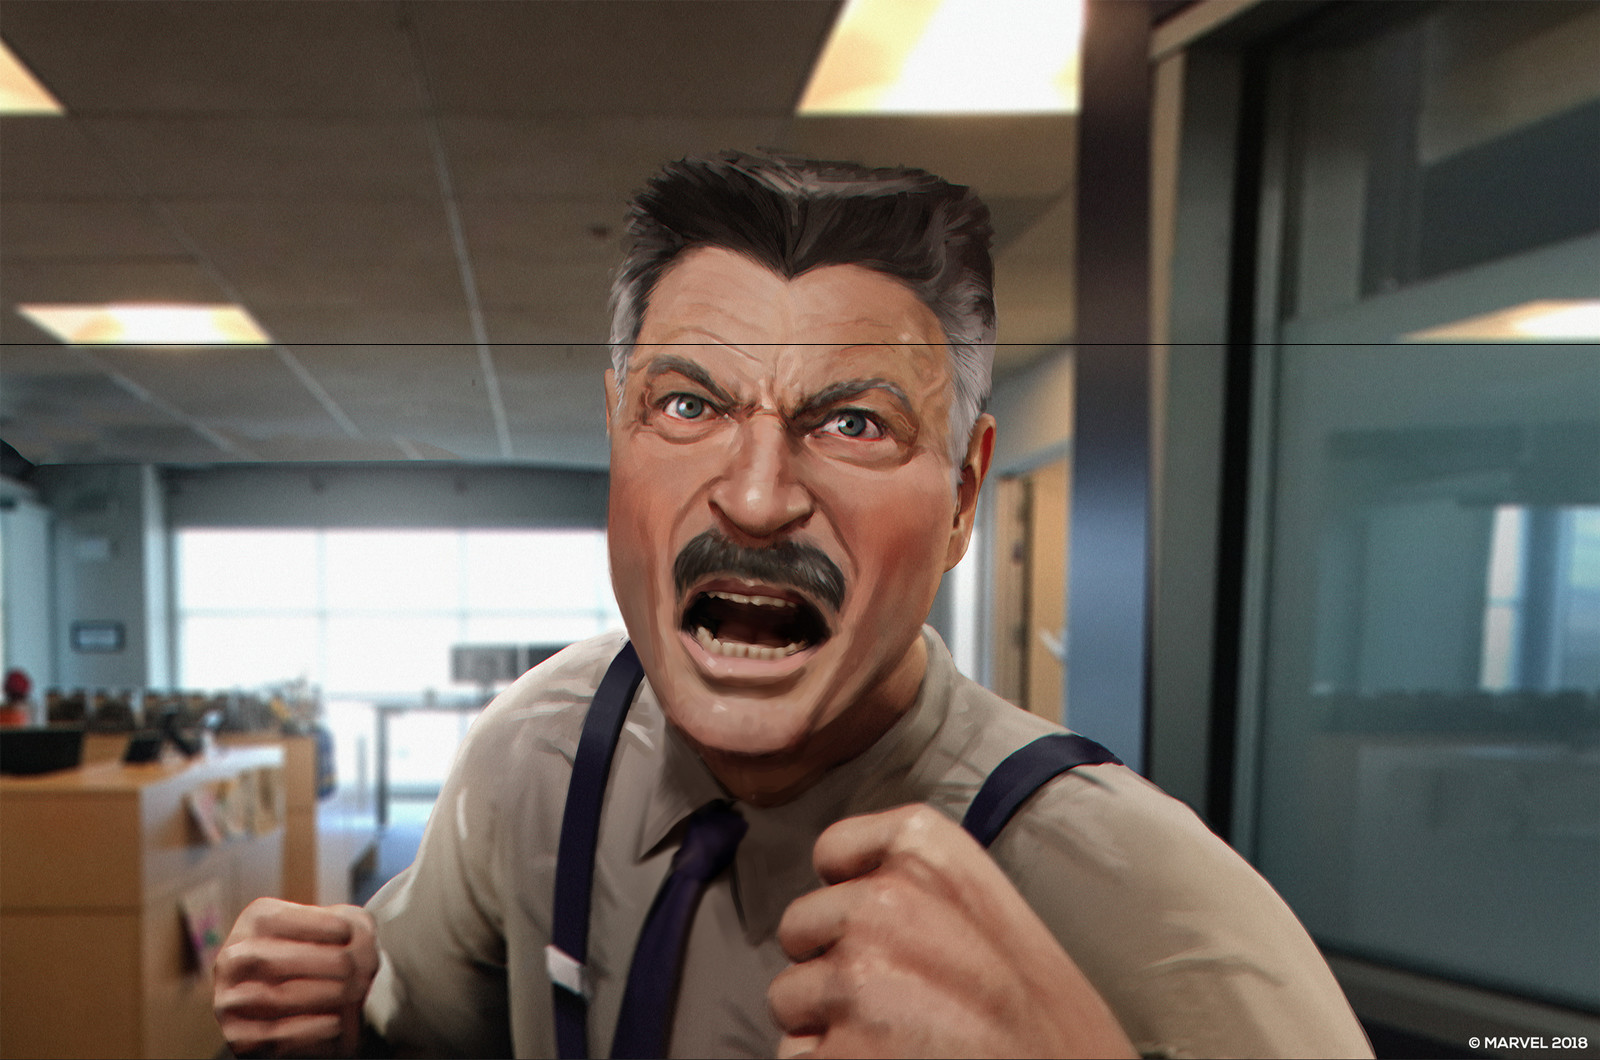 The portrait of angry J. Jonah Jameson. This one was one of the most fun to do. Everytime I sent it over I got asked to make him angrier and more intense. This is what we ended up with.